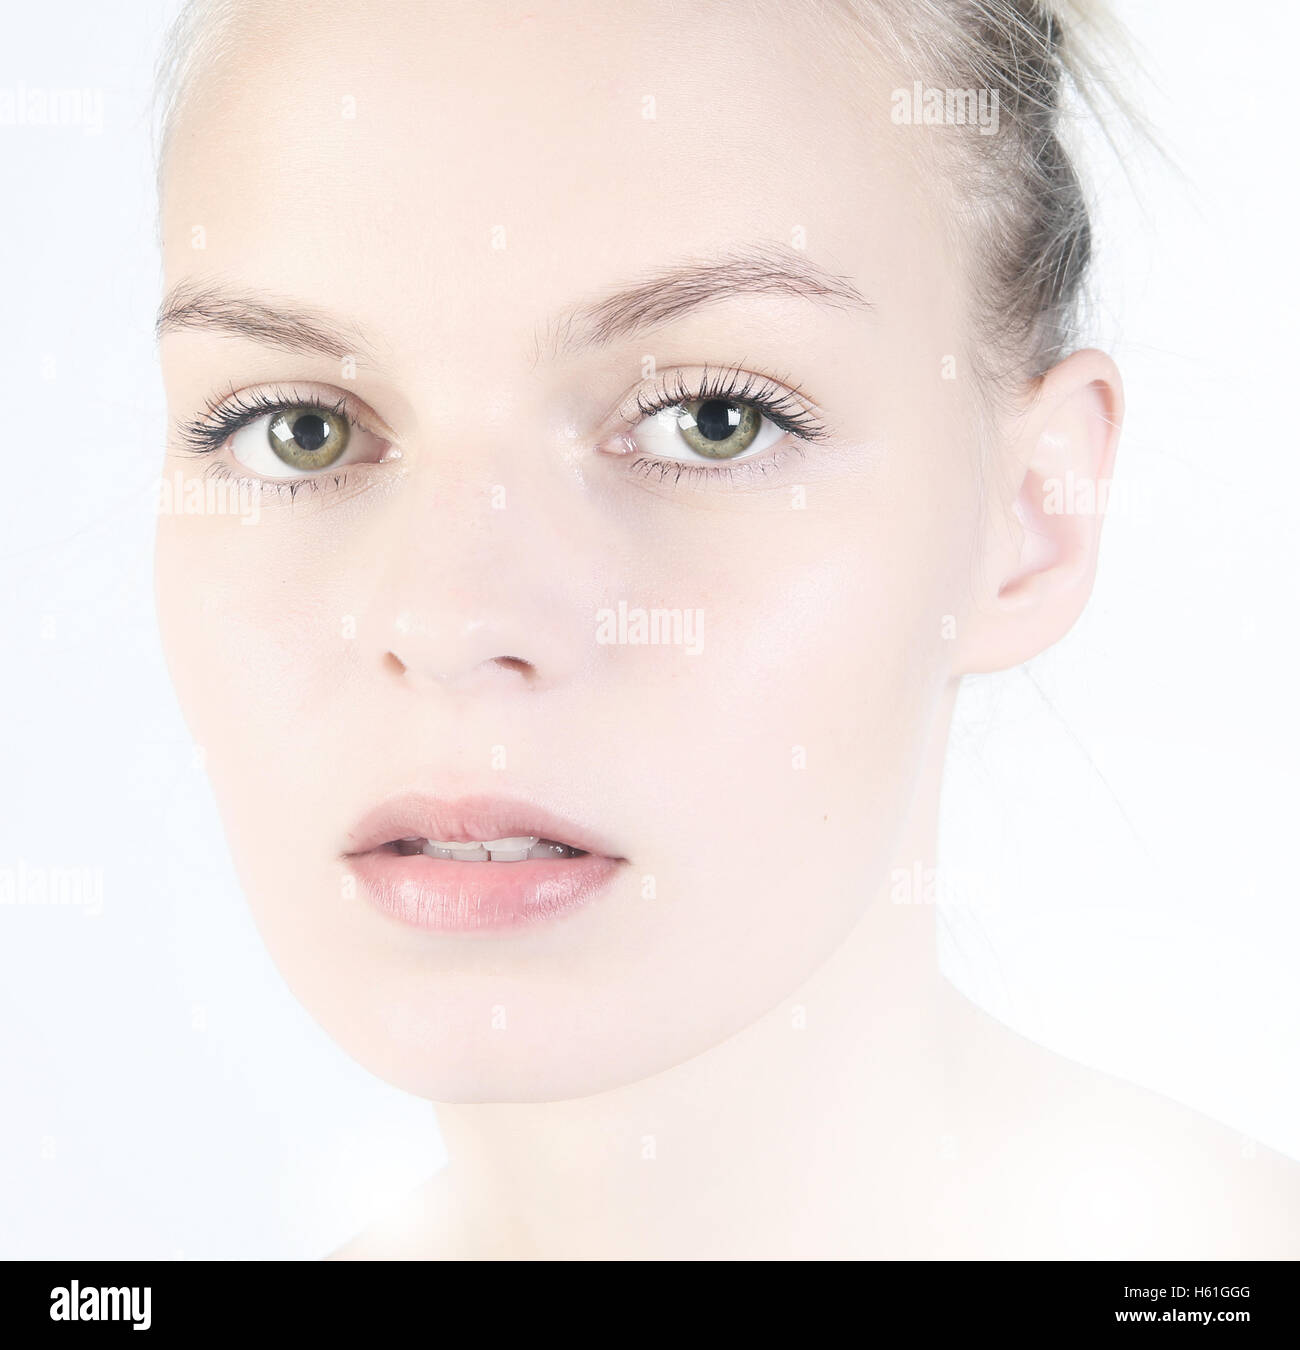 Woman beauty face portrait isolated on white with healthy skin - Stock Image